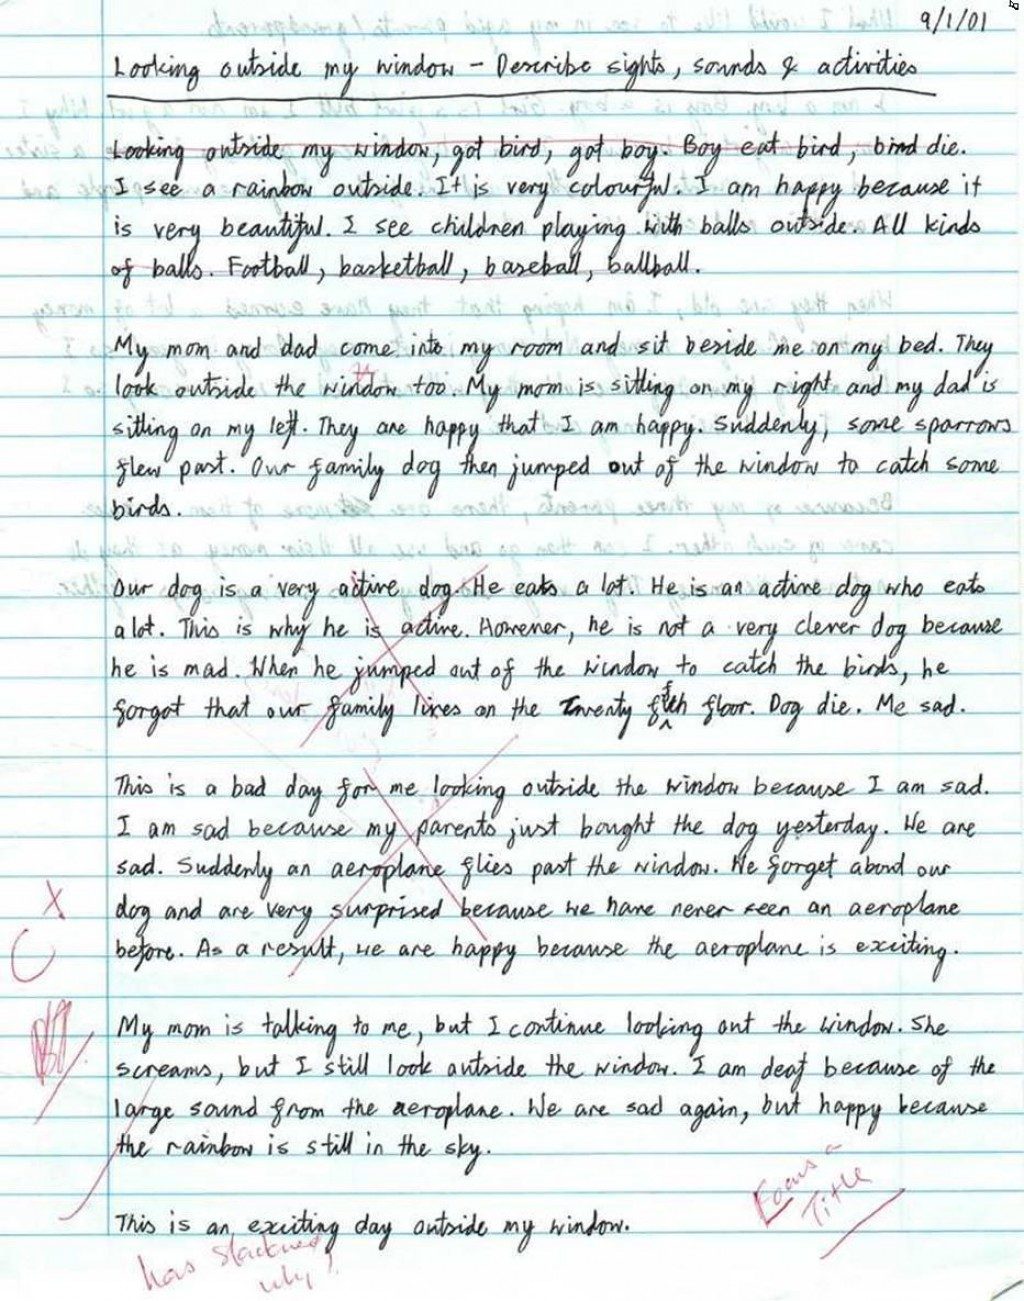 012 Read My Essay To Me Example Why Teachers 2 Unique And Tell If It's Good Large